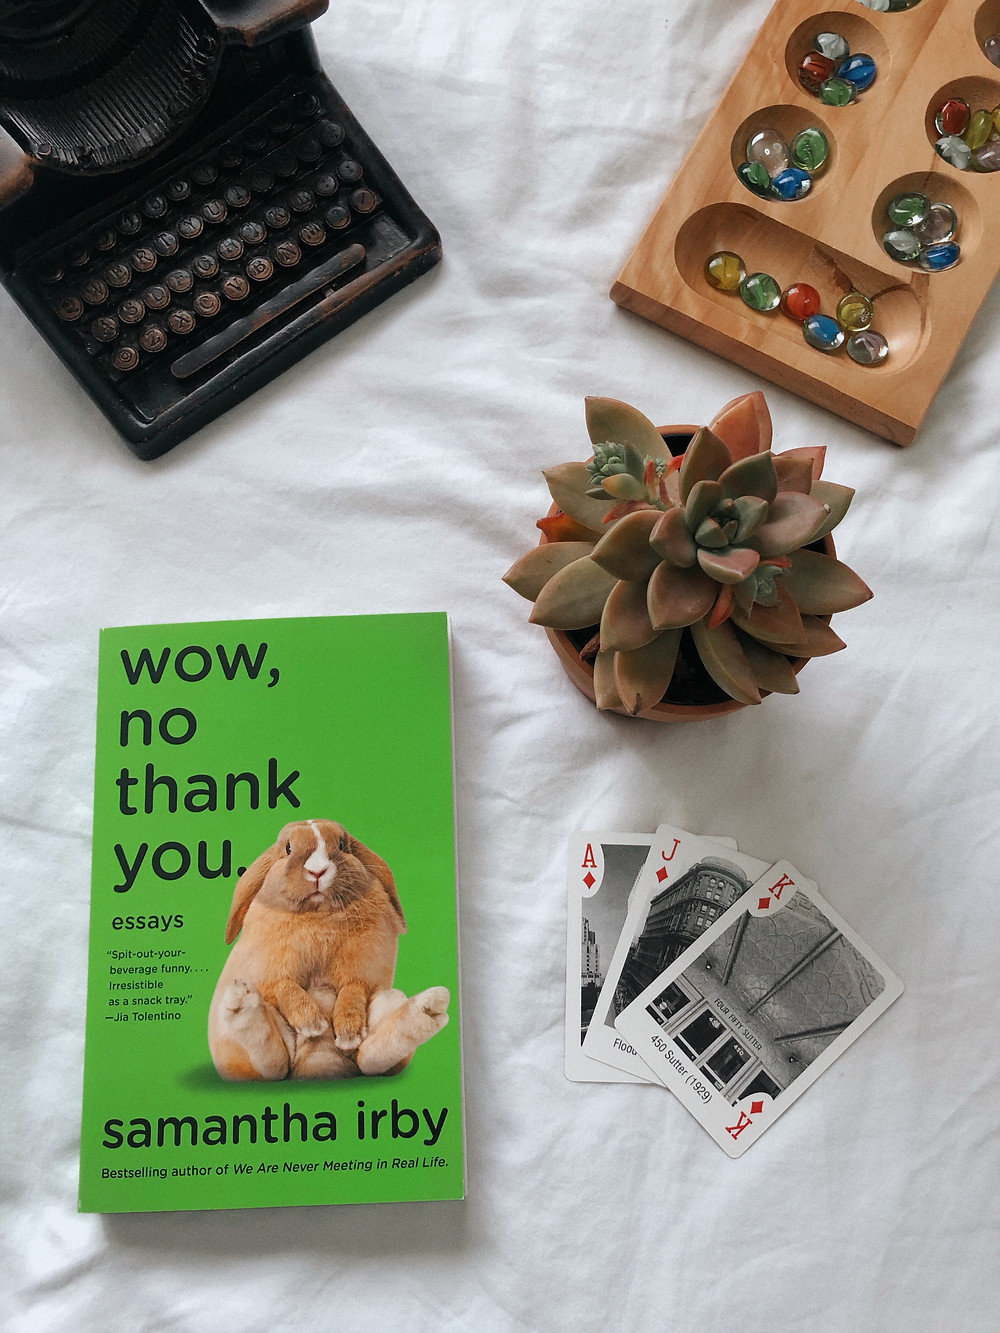 self isolation activities puzzles writing succulent plants wow no thank you penguin random house samantha irby and mancala games